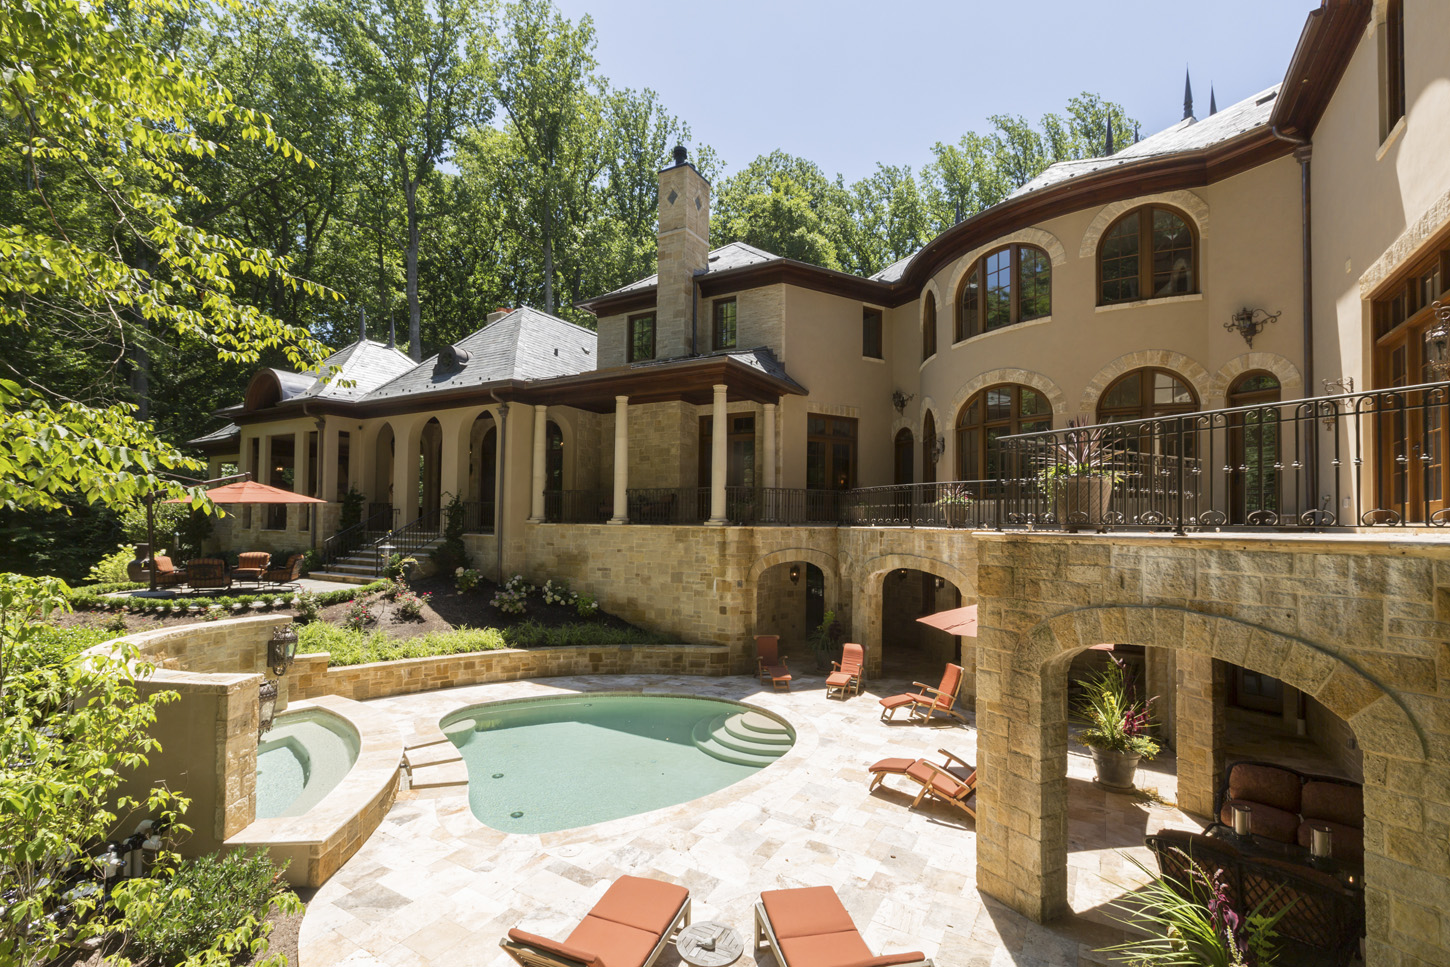 $12.9 Million 15,000 Square Foot Newly Built French Provincial Mansion In McLean, VA